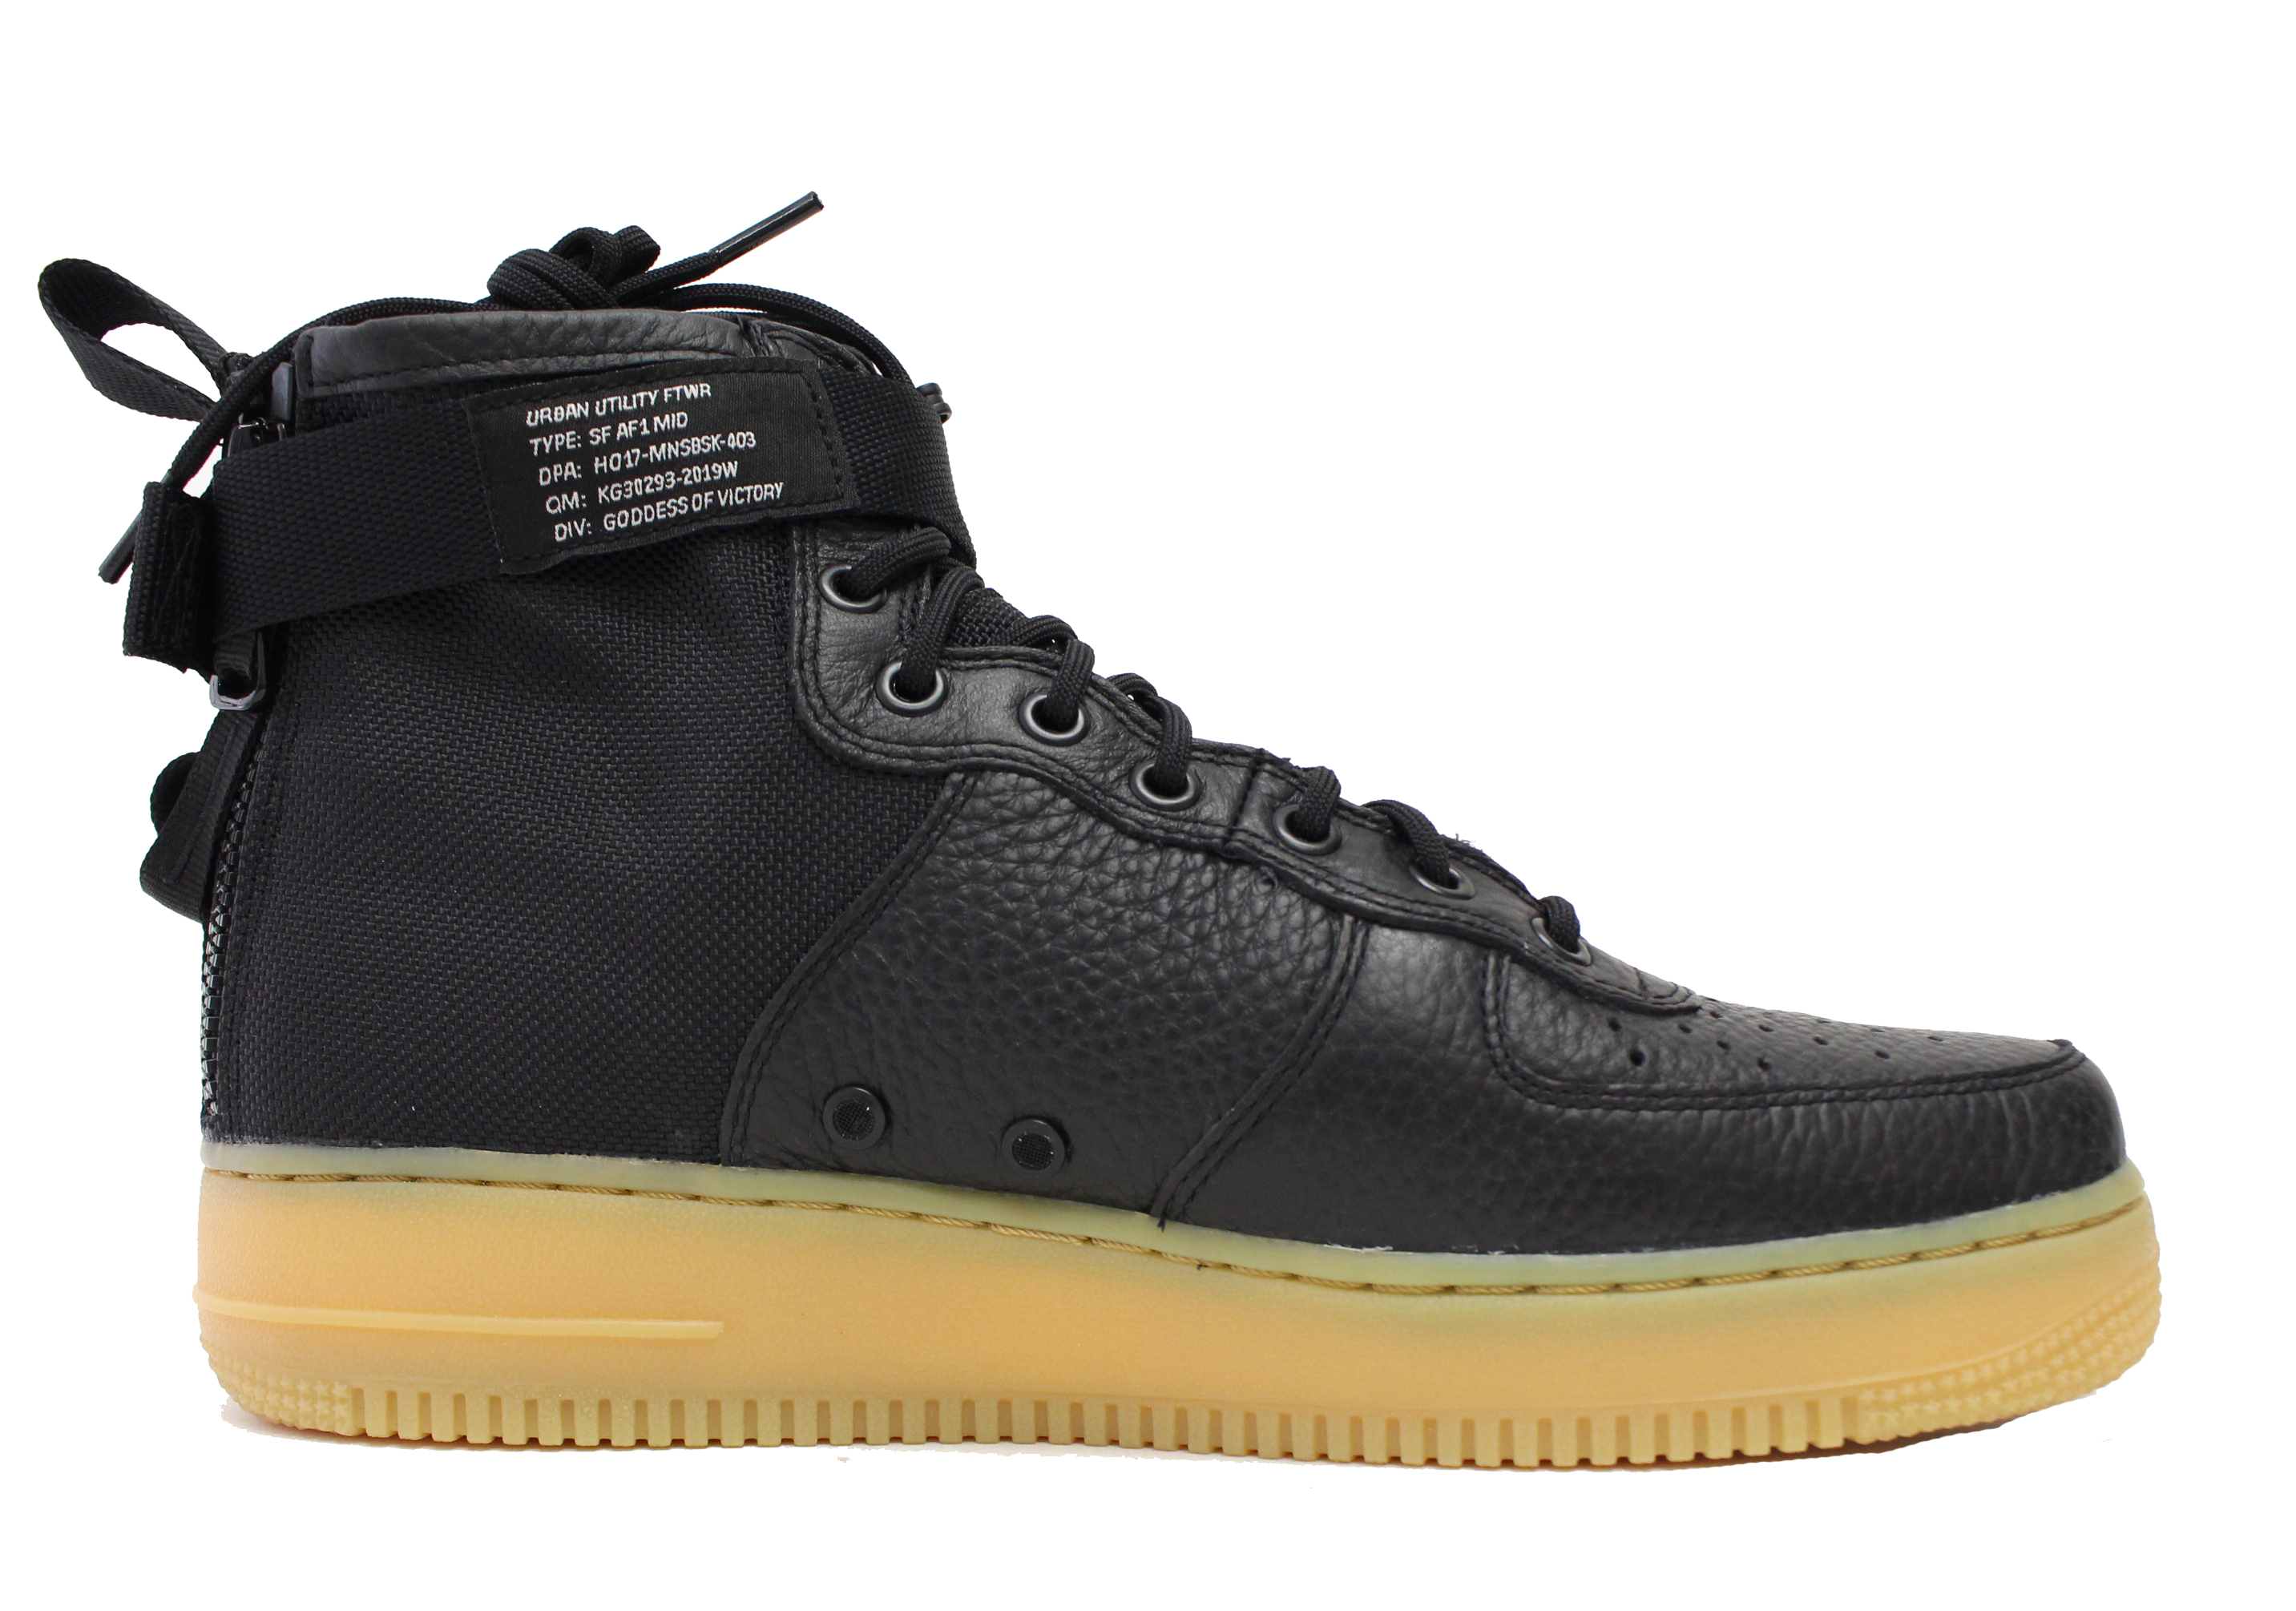 NIKE SF AF1 AIR FORCE 1 ONE MID SZ 8 BLACK GUM BROWN FIELD BOOT 917753 003